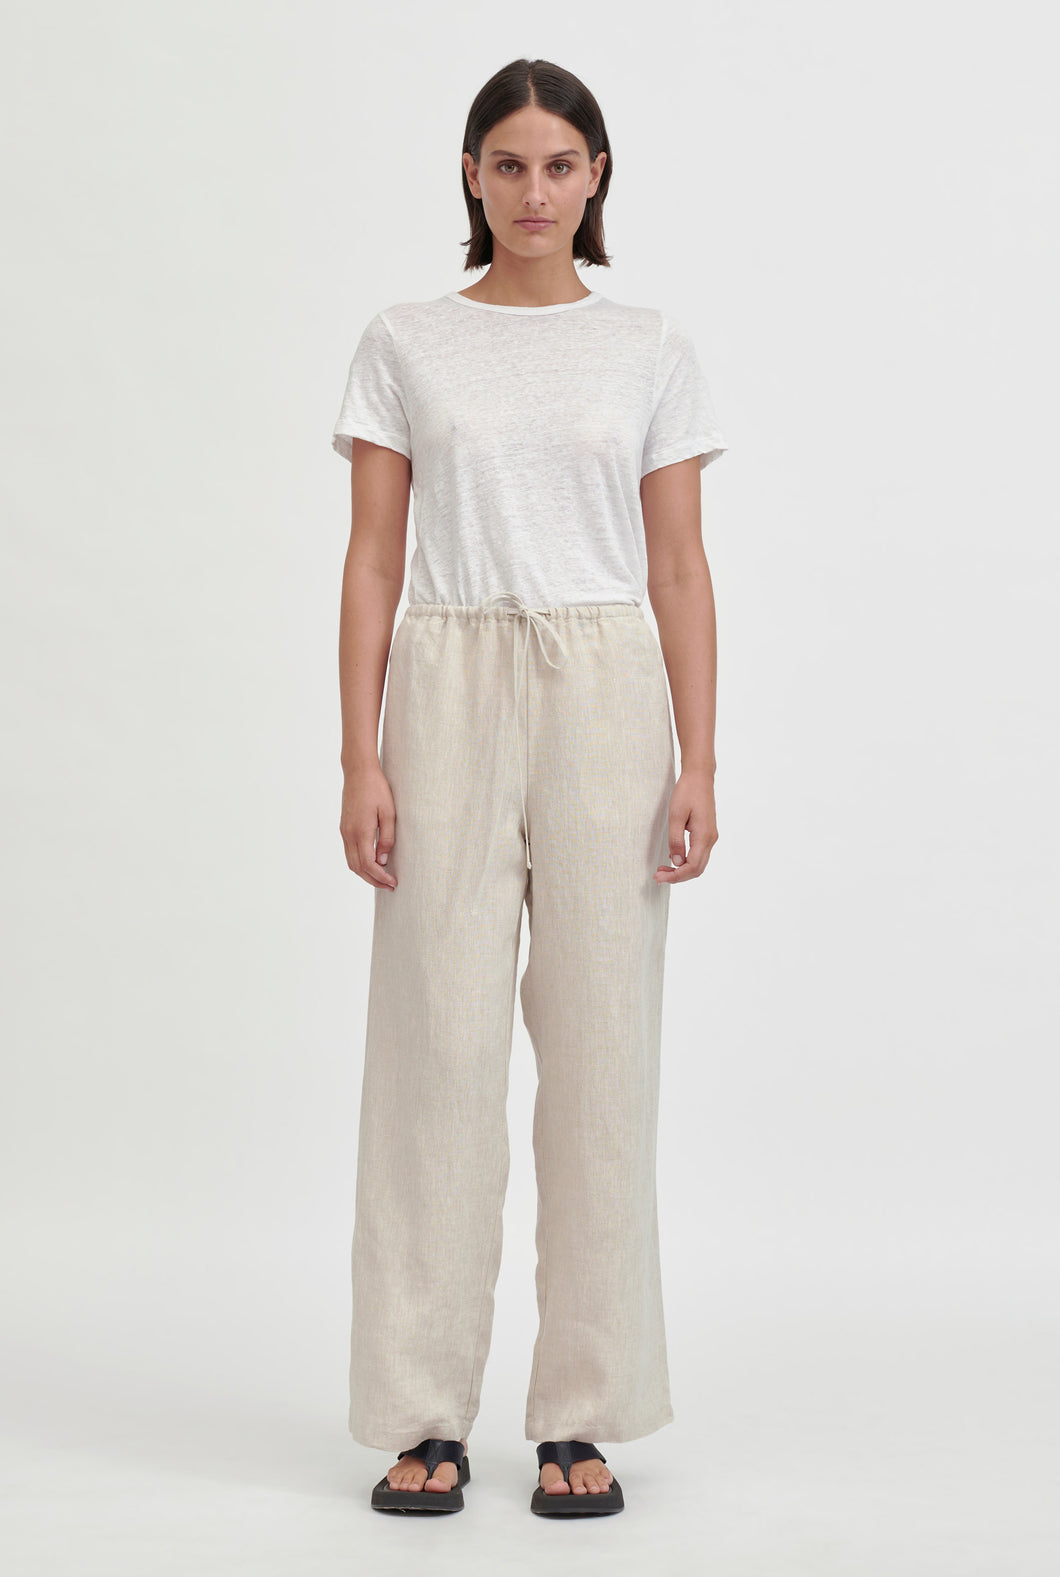 High Waisted Drawstring Pant - Sand